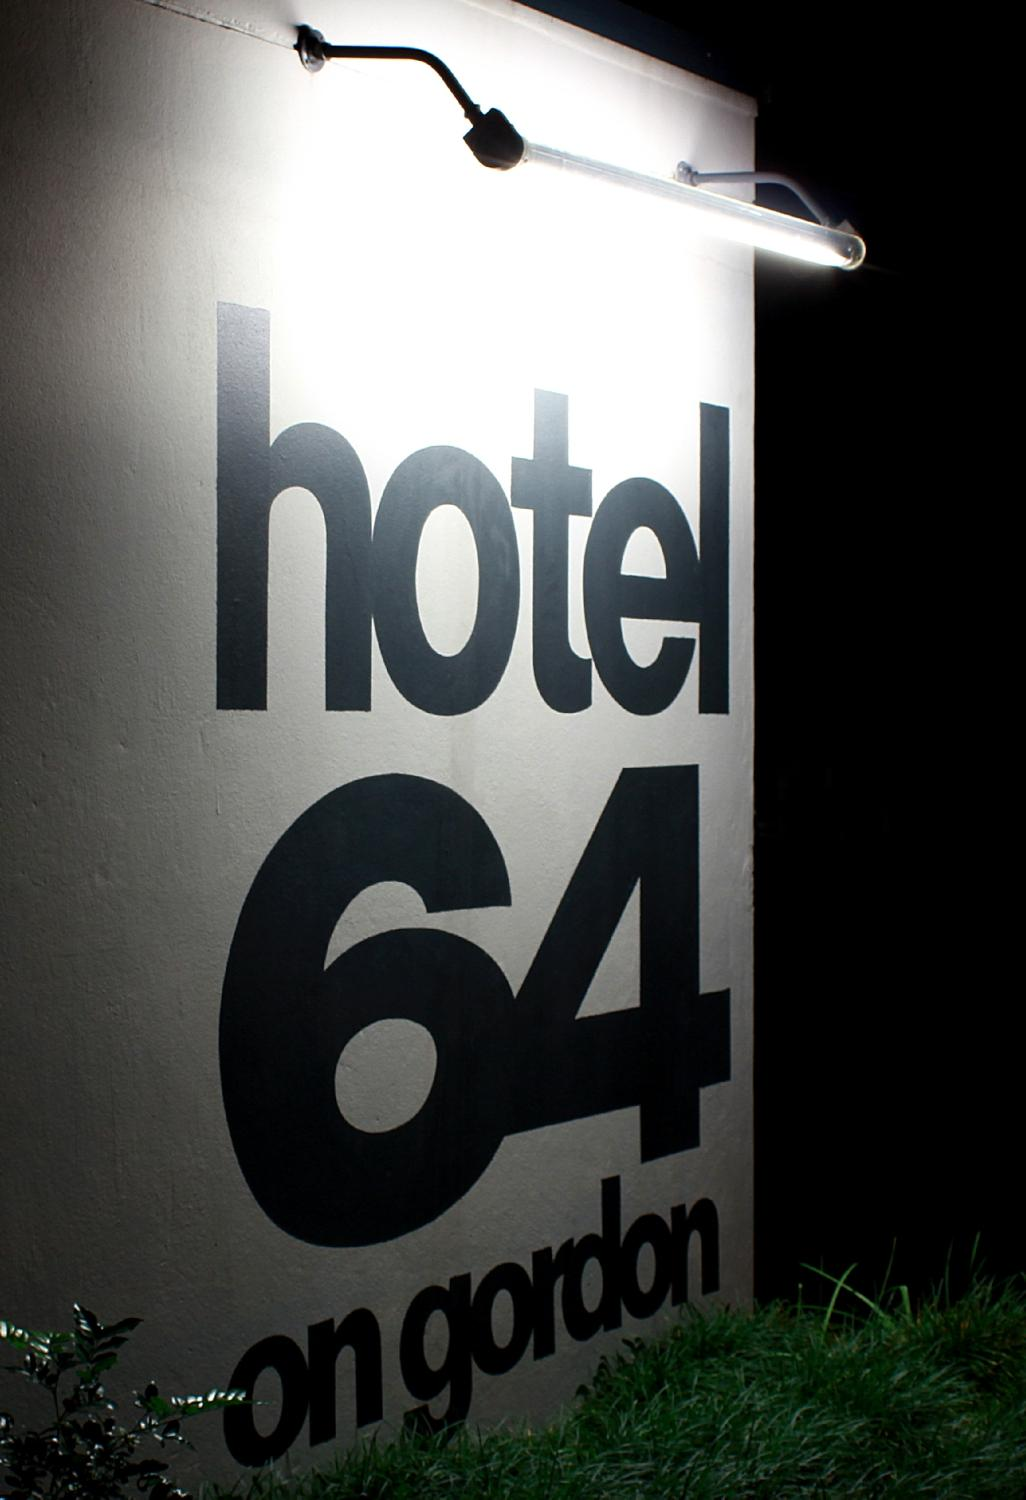 Hotel 64 on Gordon